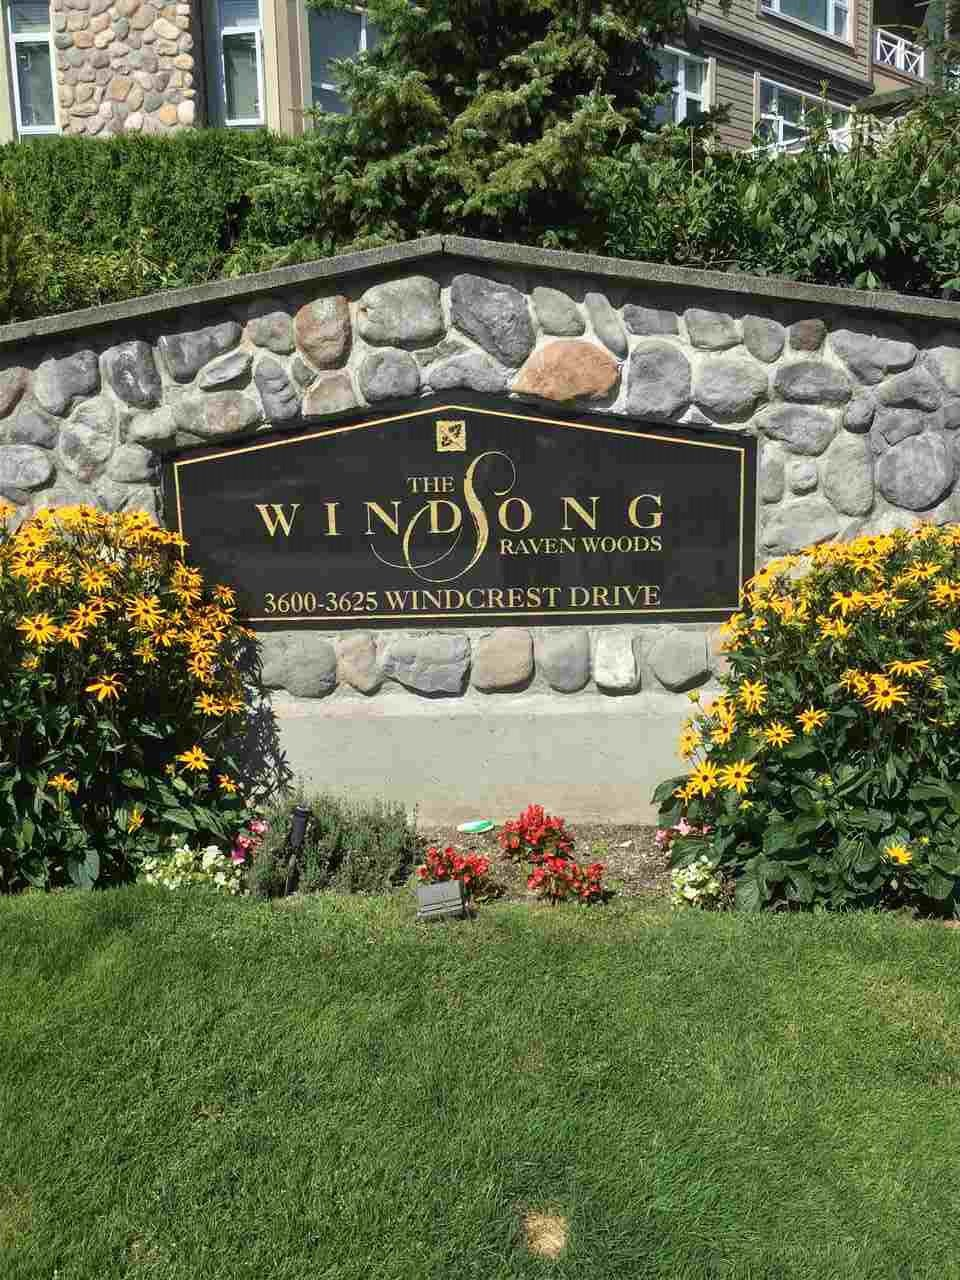 """Main Photo: 414 3600 WINDCREST Drive in North Vancouver: Roche Point Condo for sale in """"Windsong"""" : MLS®# R2477168"""